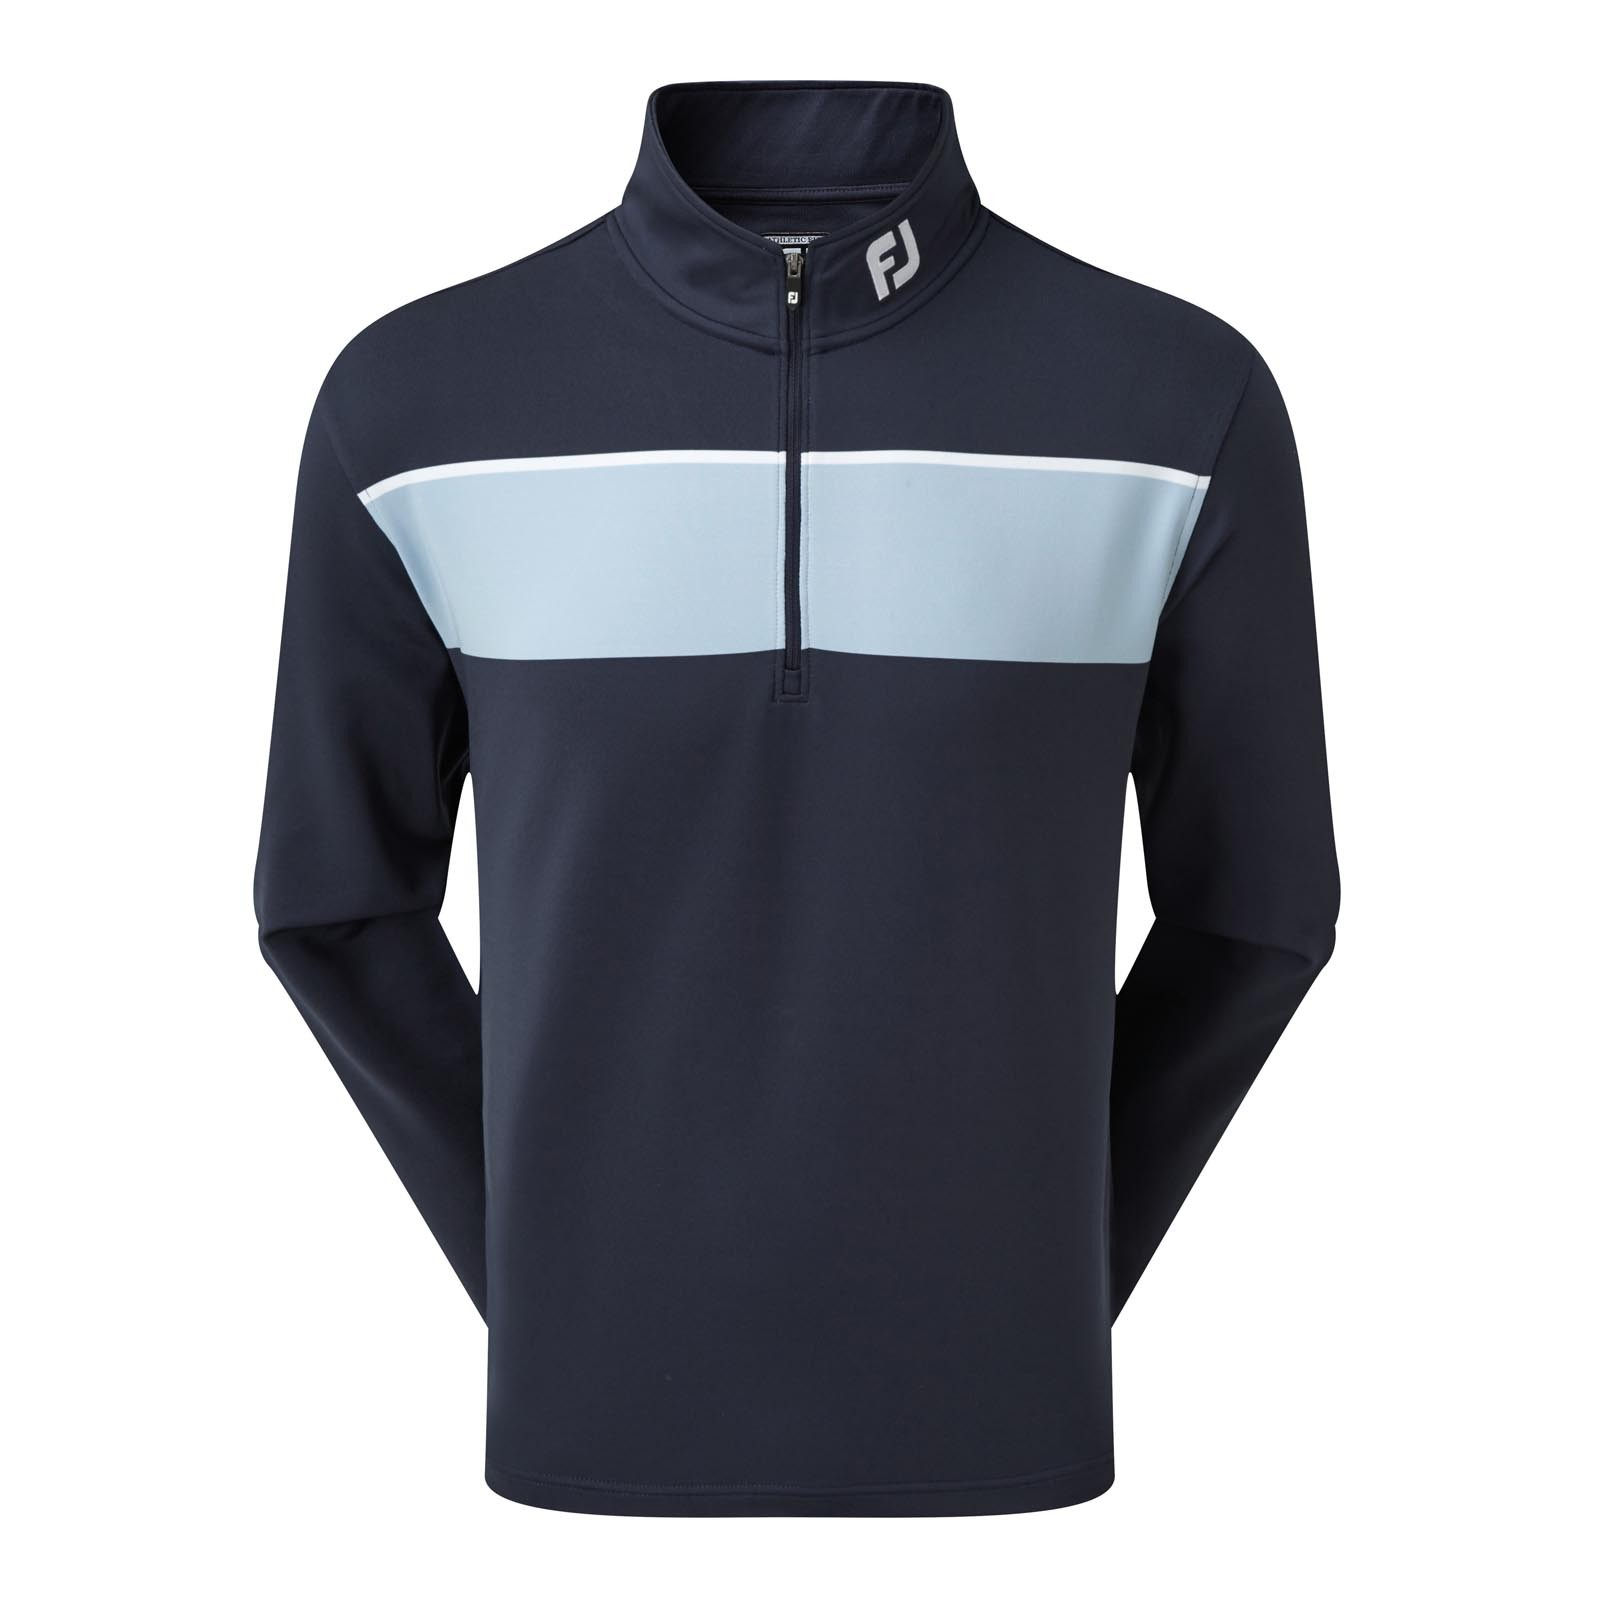 Footjoy Jersey Chest Stripe Chill-Out Pullovers